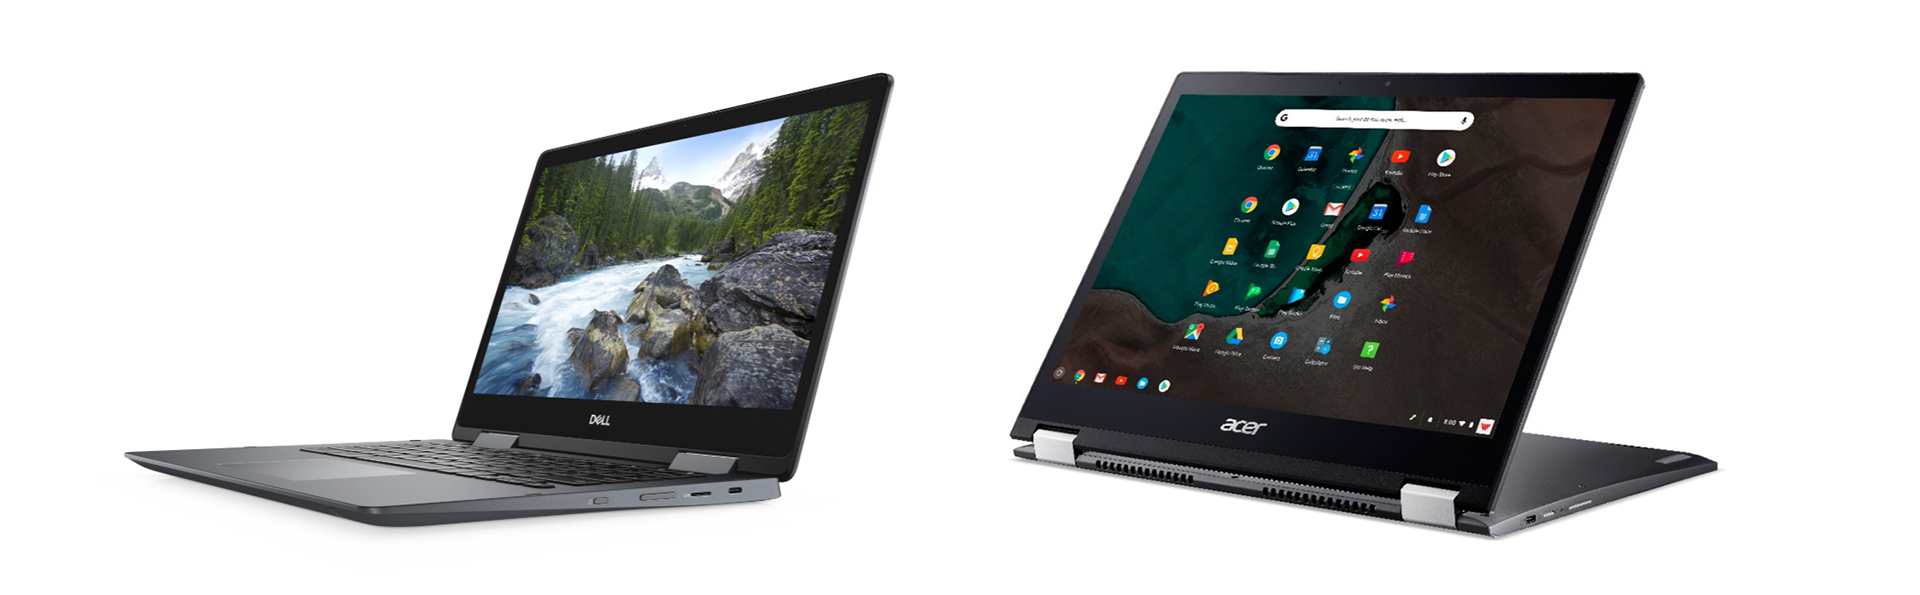 Dell and Acer Core U powered convertible Chromebooks